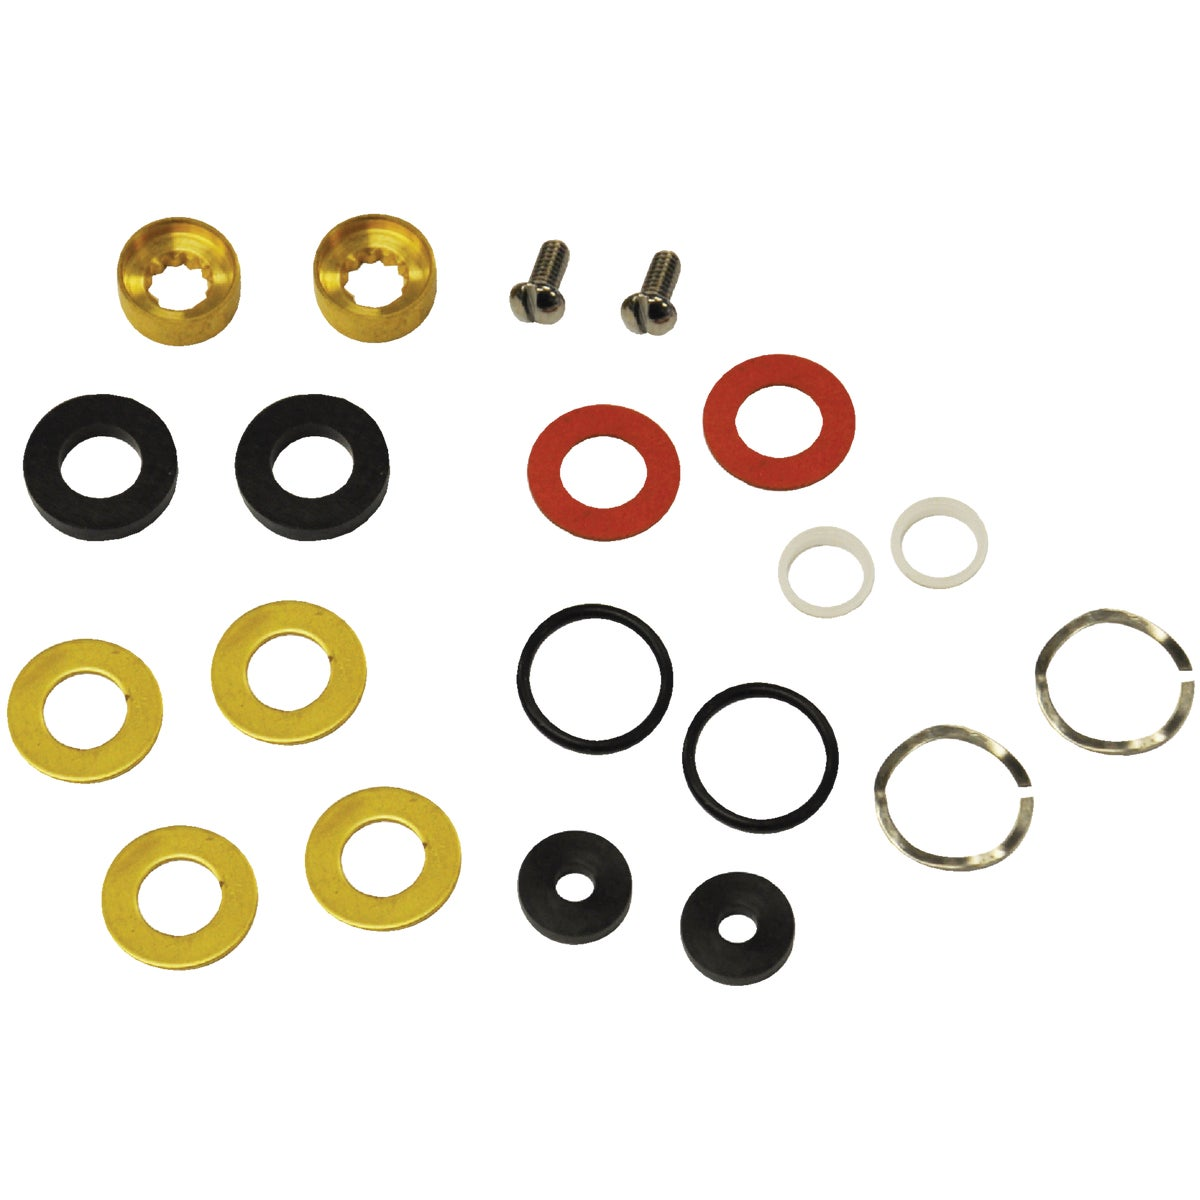 AMER STND REPAIR KIT - 80262 by Danco Perfect Match